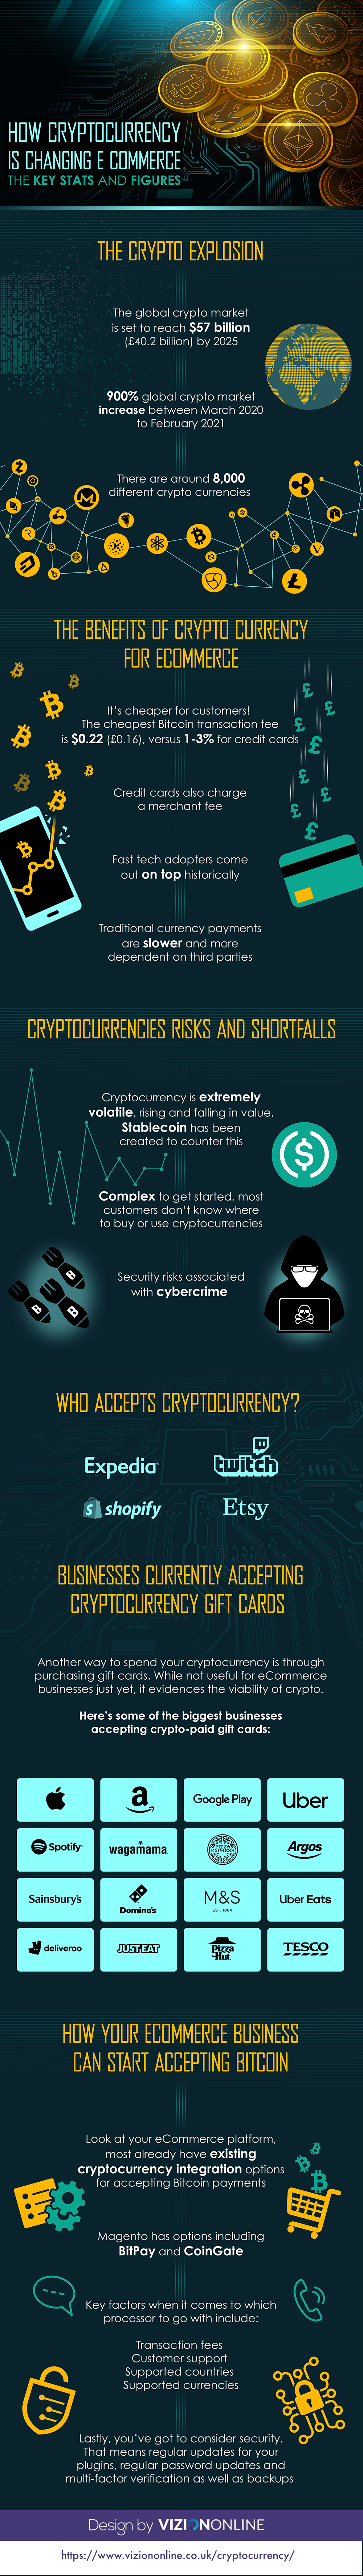 How Cryptocurrency Is Changing eCommerce